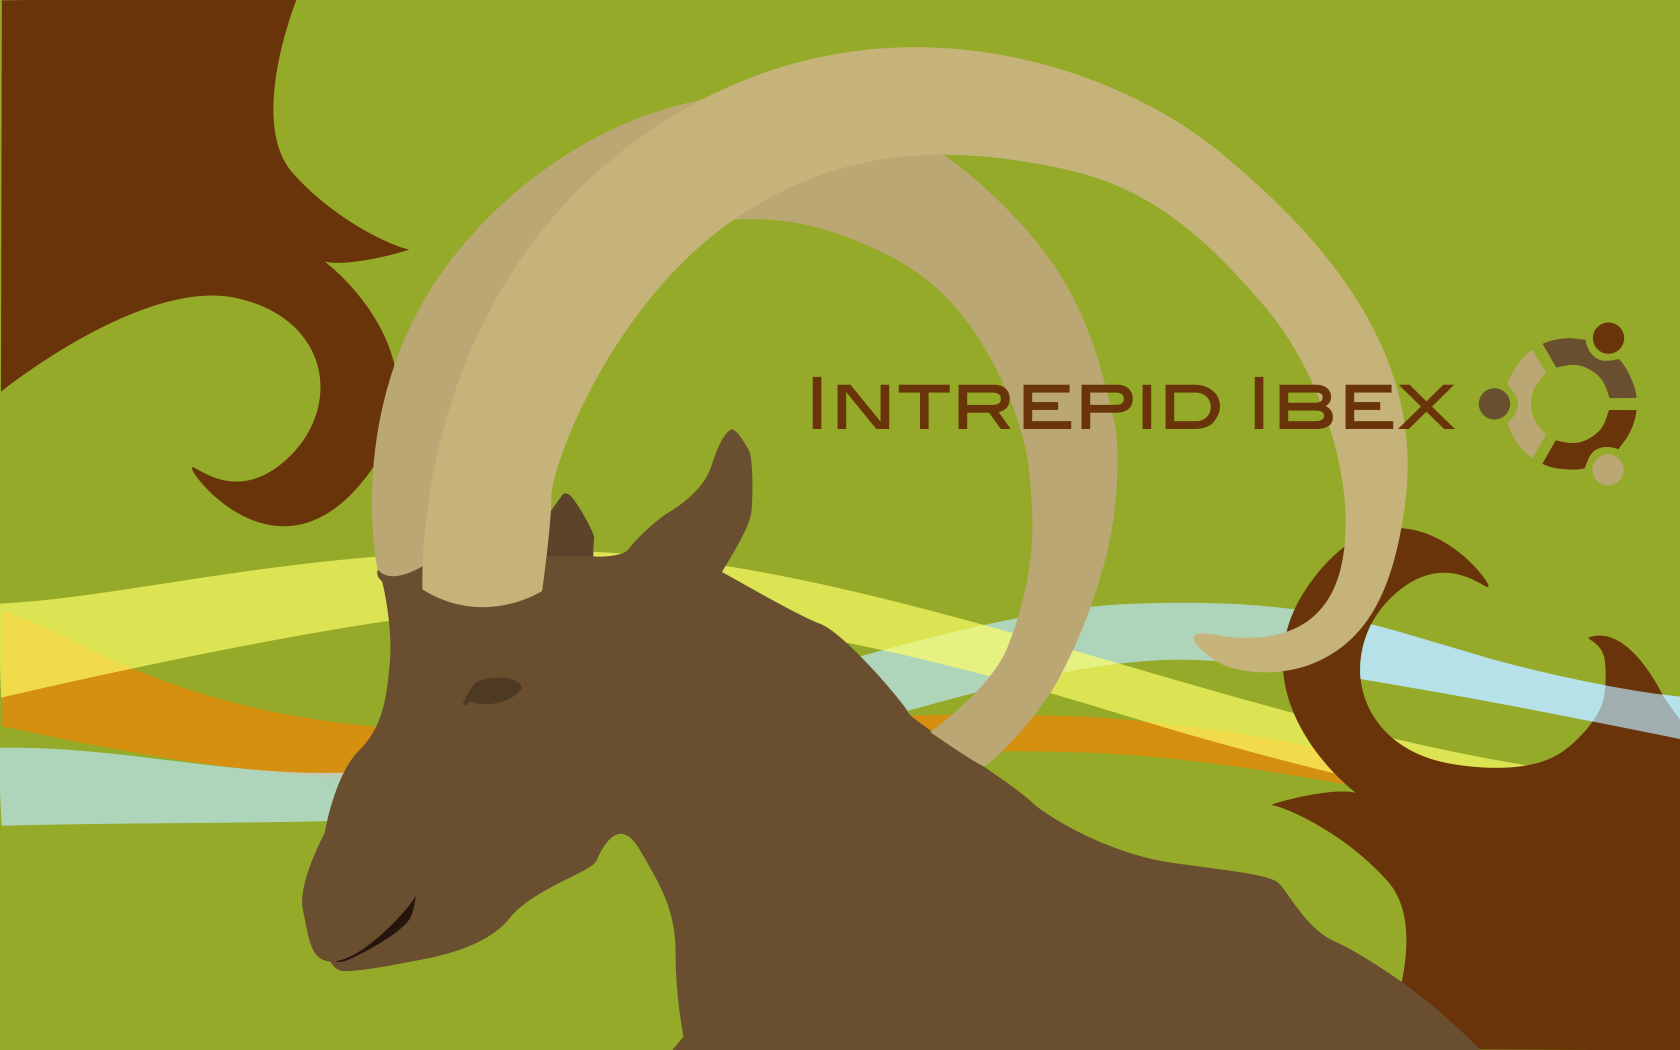 Intrepid Ibex clipart #17, Download drawings